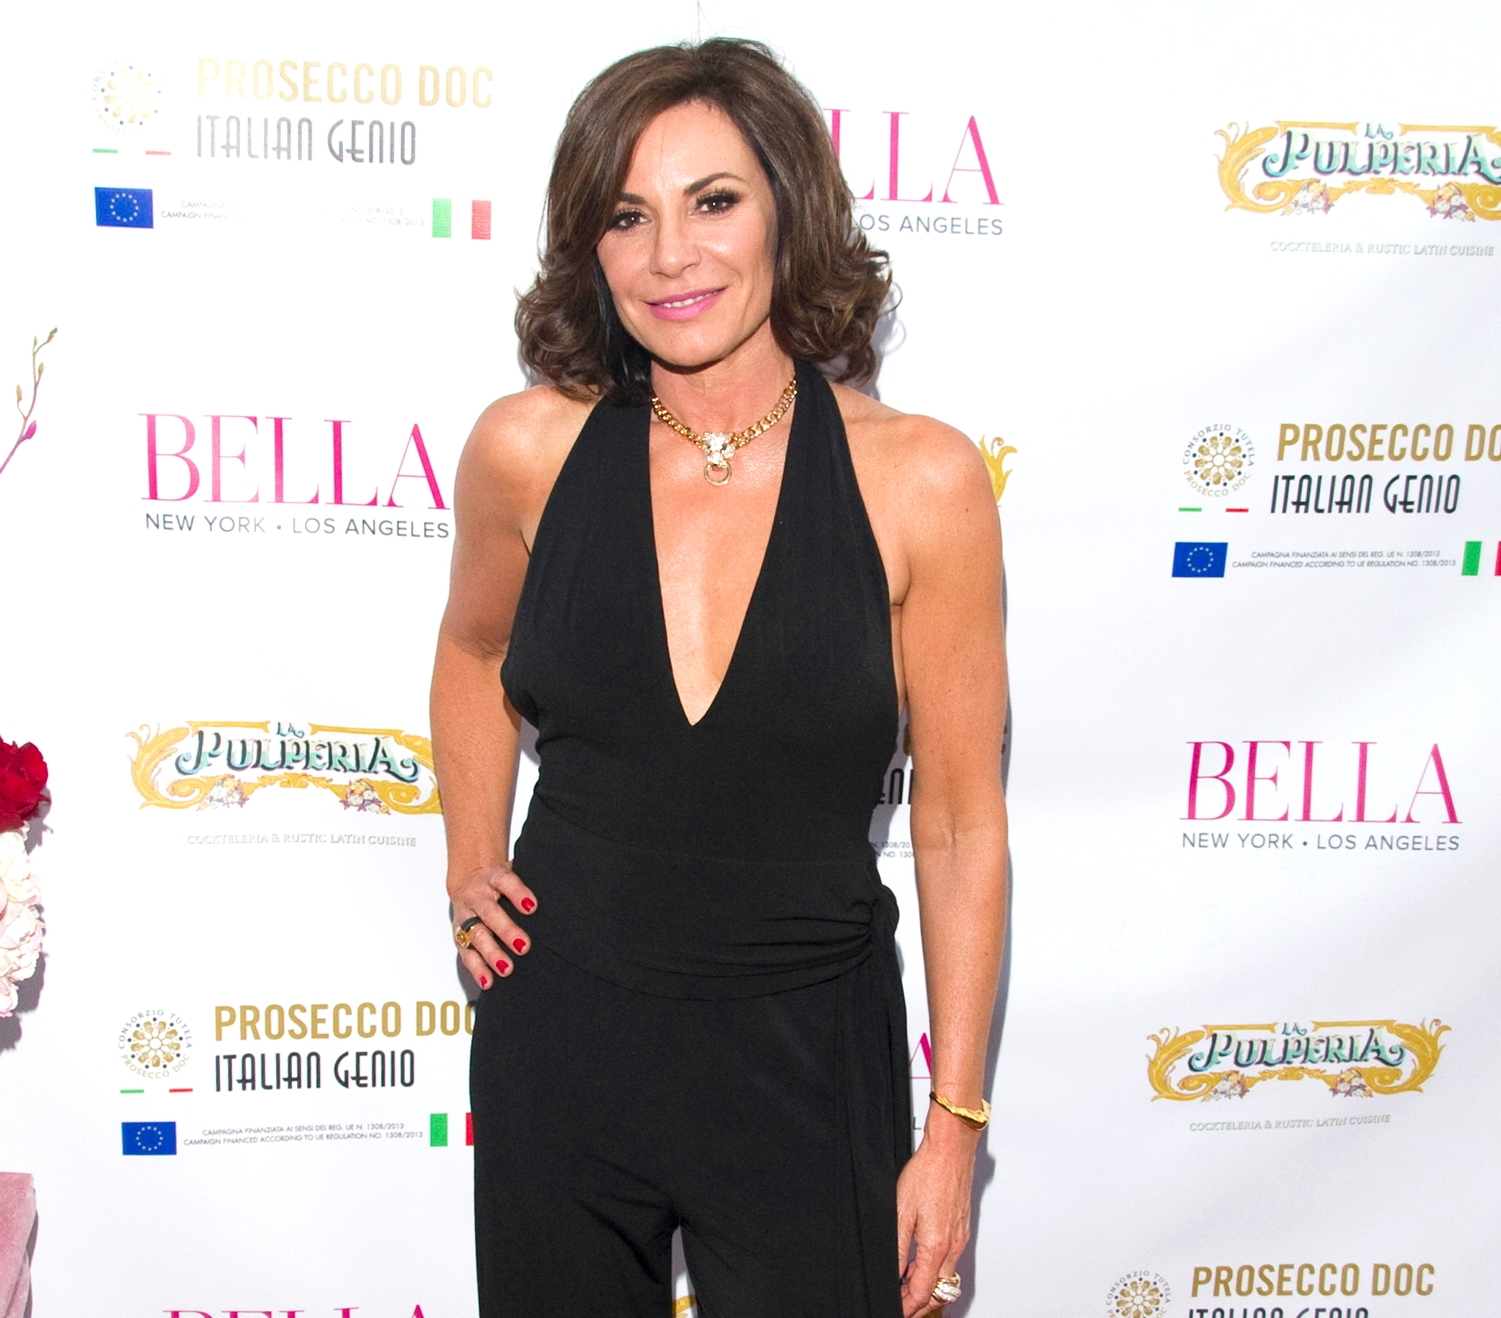 RHONY's LuAnn De Lesseps Talks Arrest and Rehab